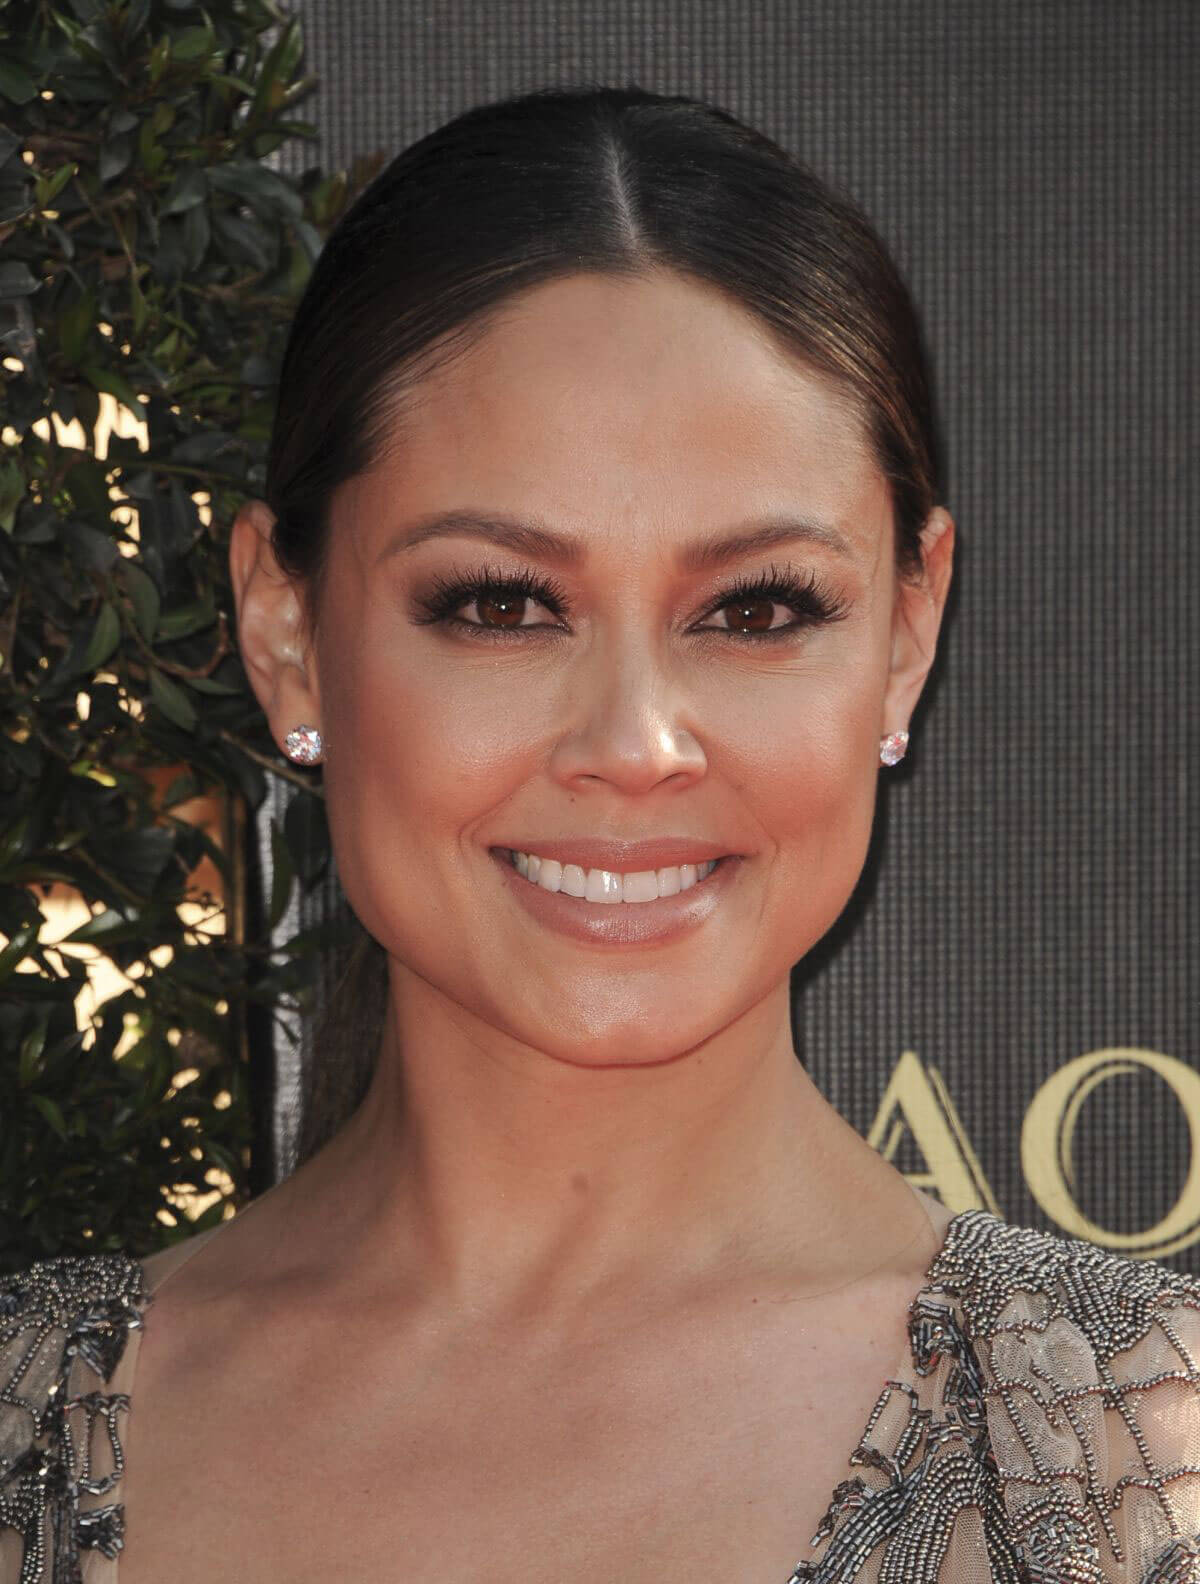 Apologise, but, vanessa lachey cleavage was